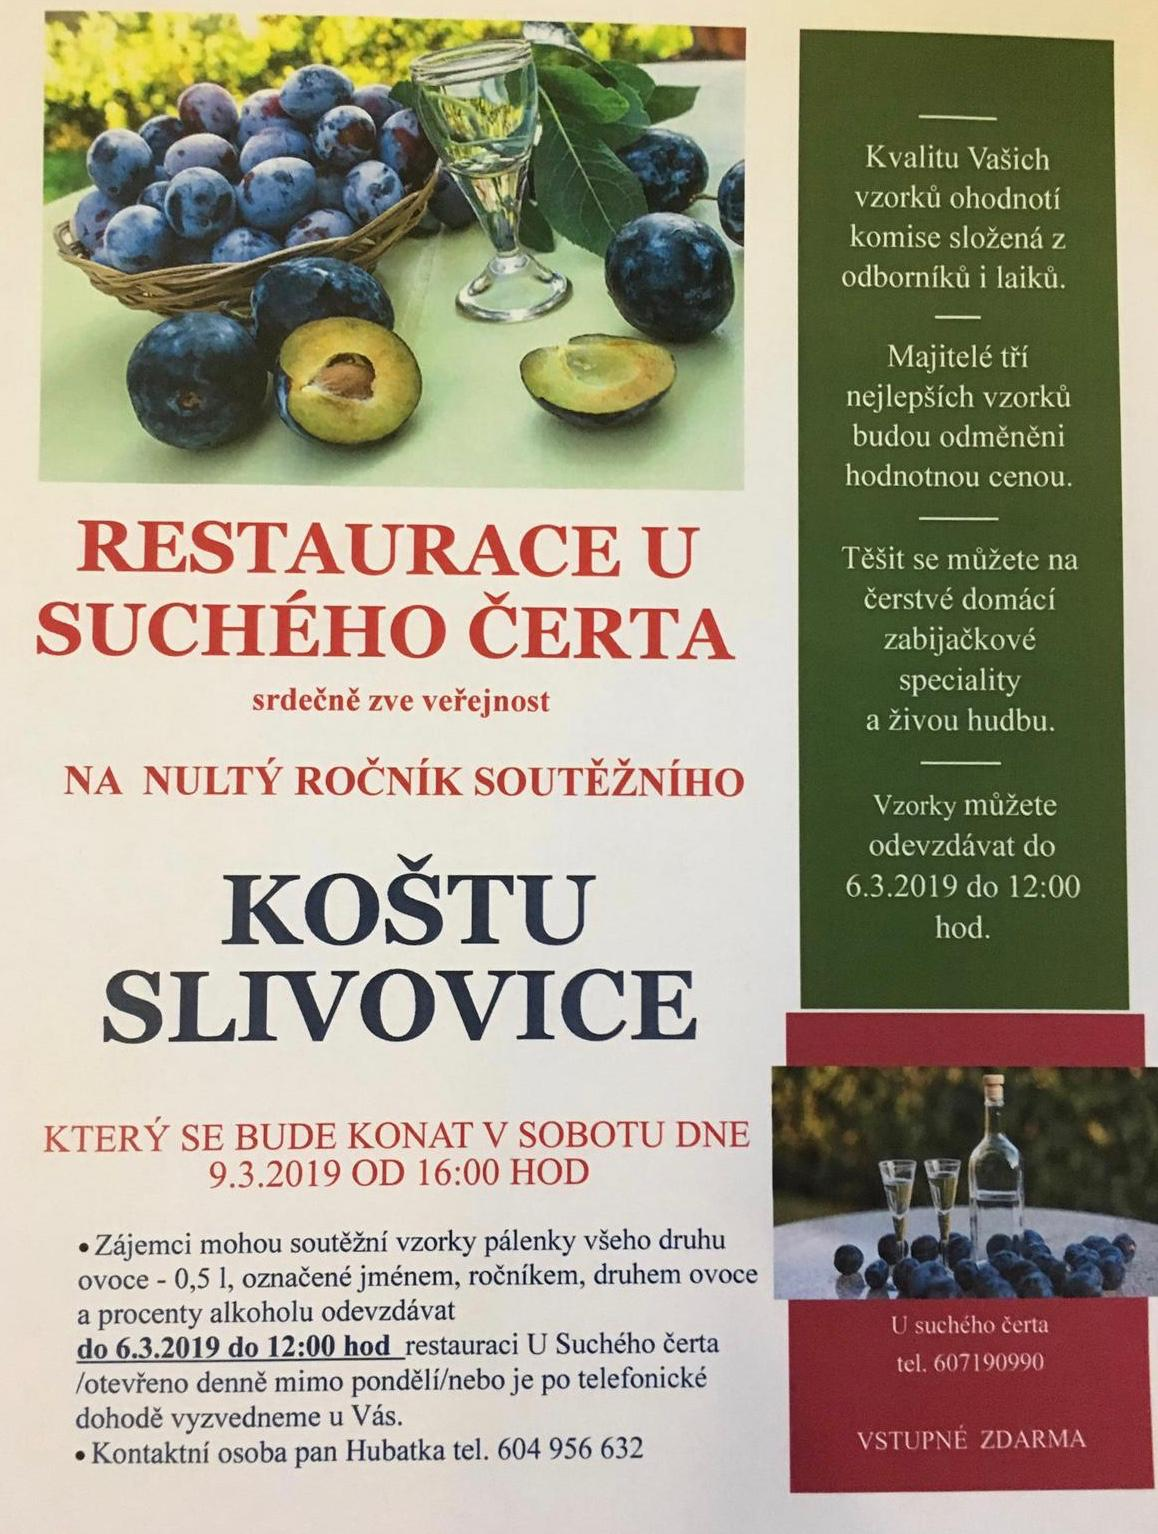 Košt slivovice, Jevišovice